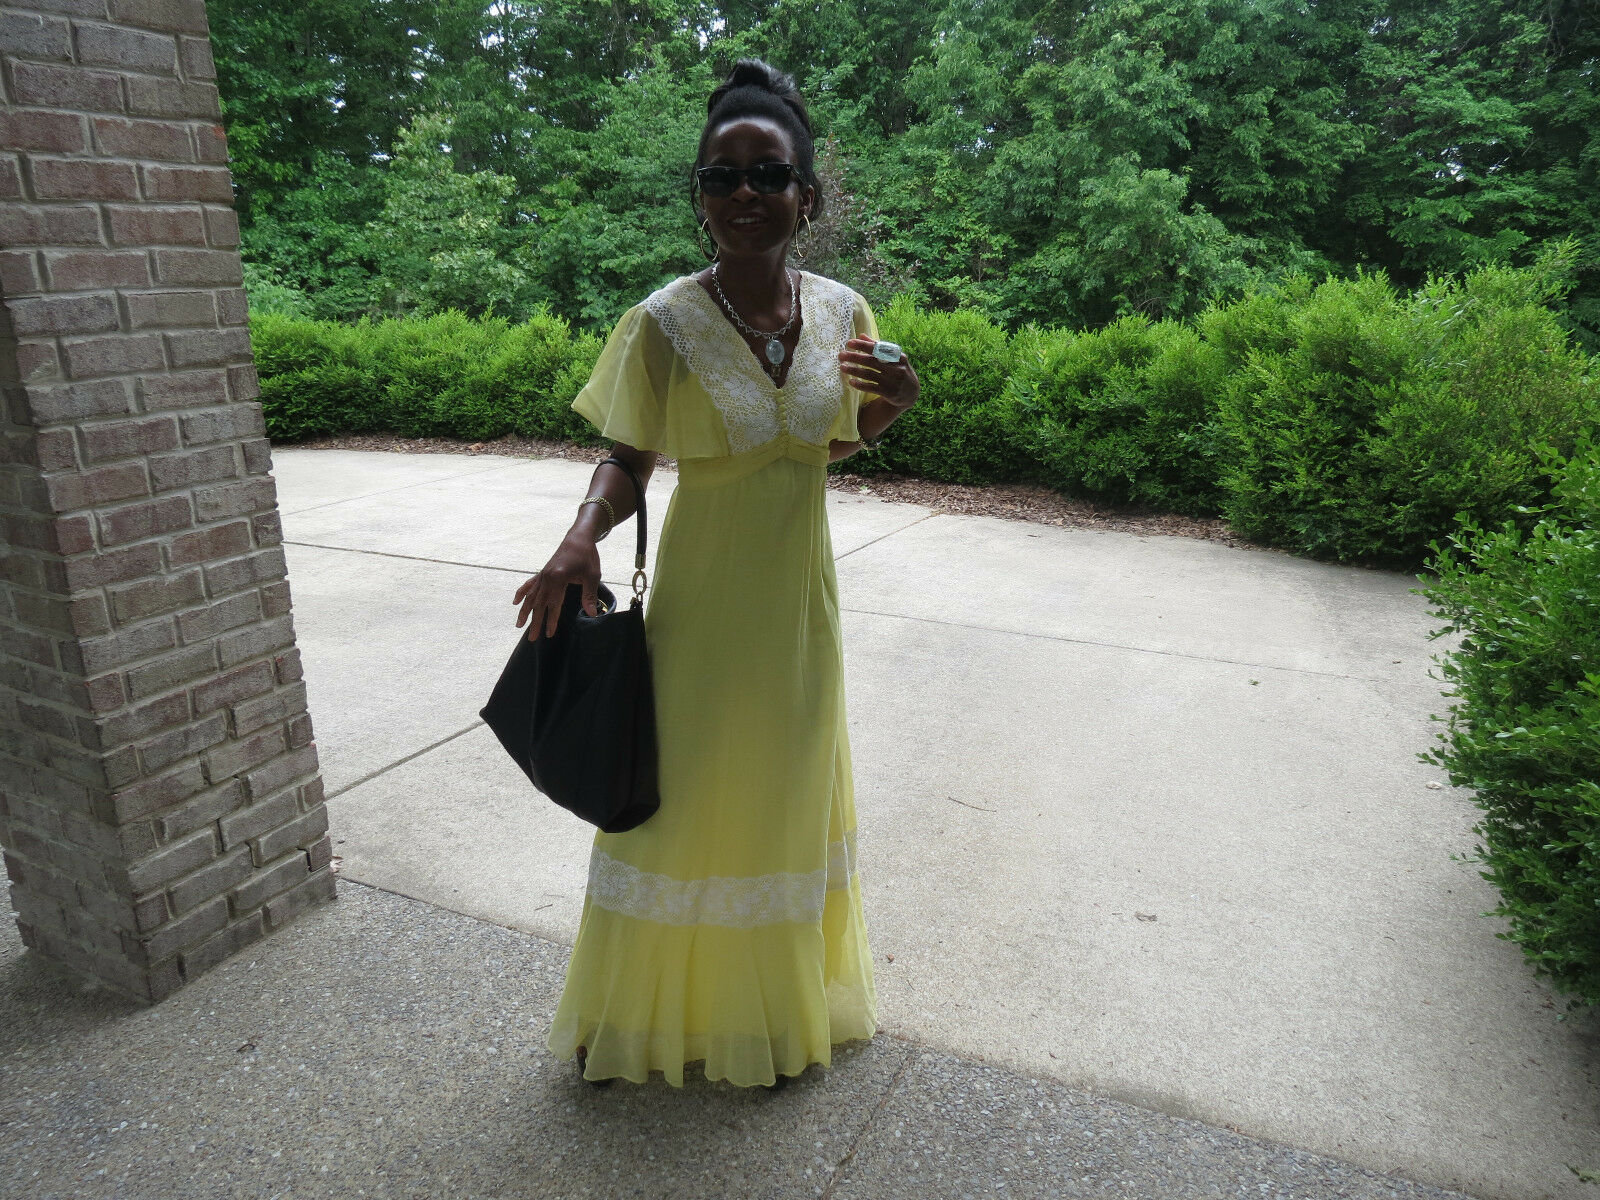 Vtg white Yellow lace trim long summer dress gown S 0-4 like in movie safelight